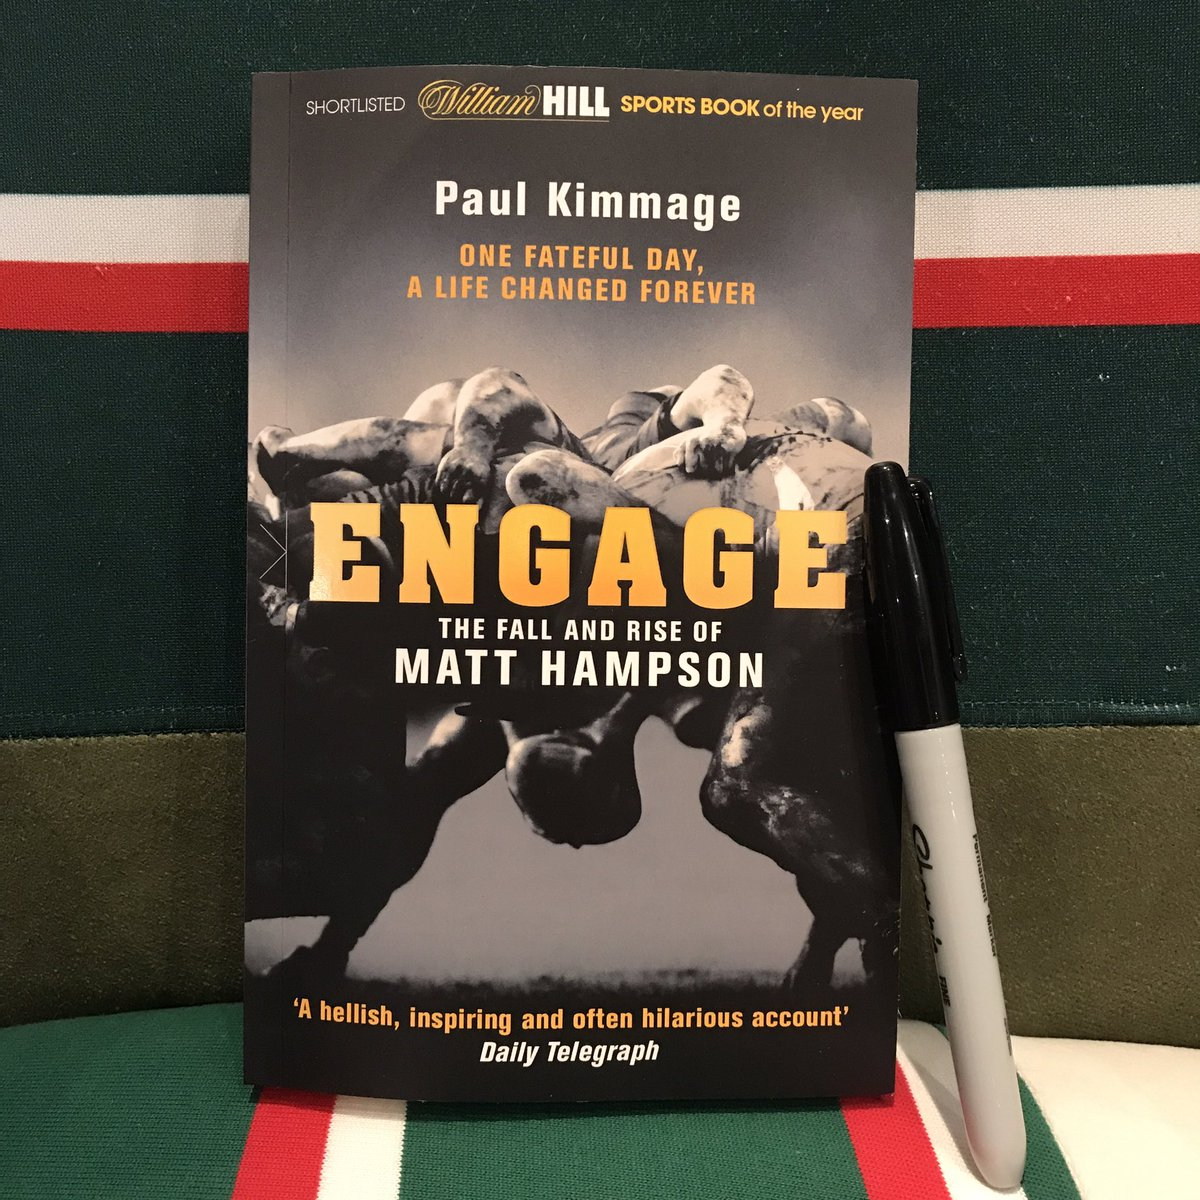 Retweet and Follow for your chance to win a personally signed copy of Engage by Matt Hampson #GetBusyLiving https://t.co/dgAIunAG0x